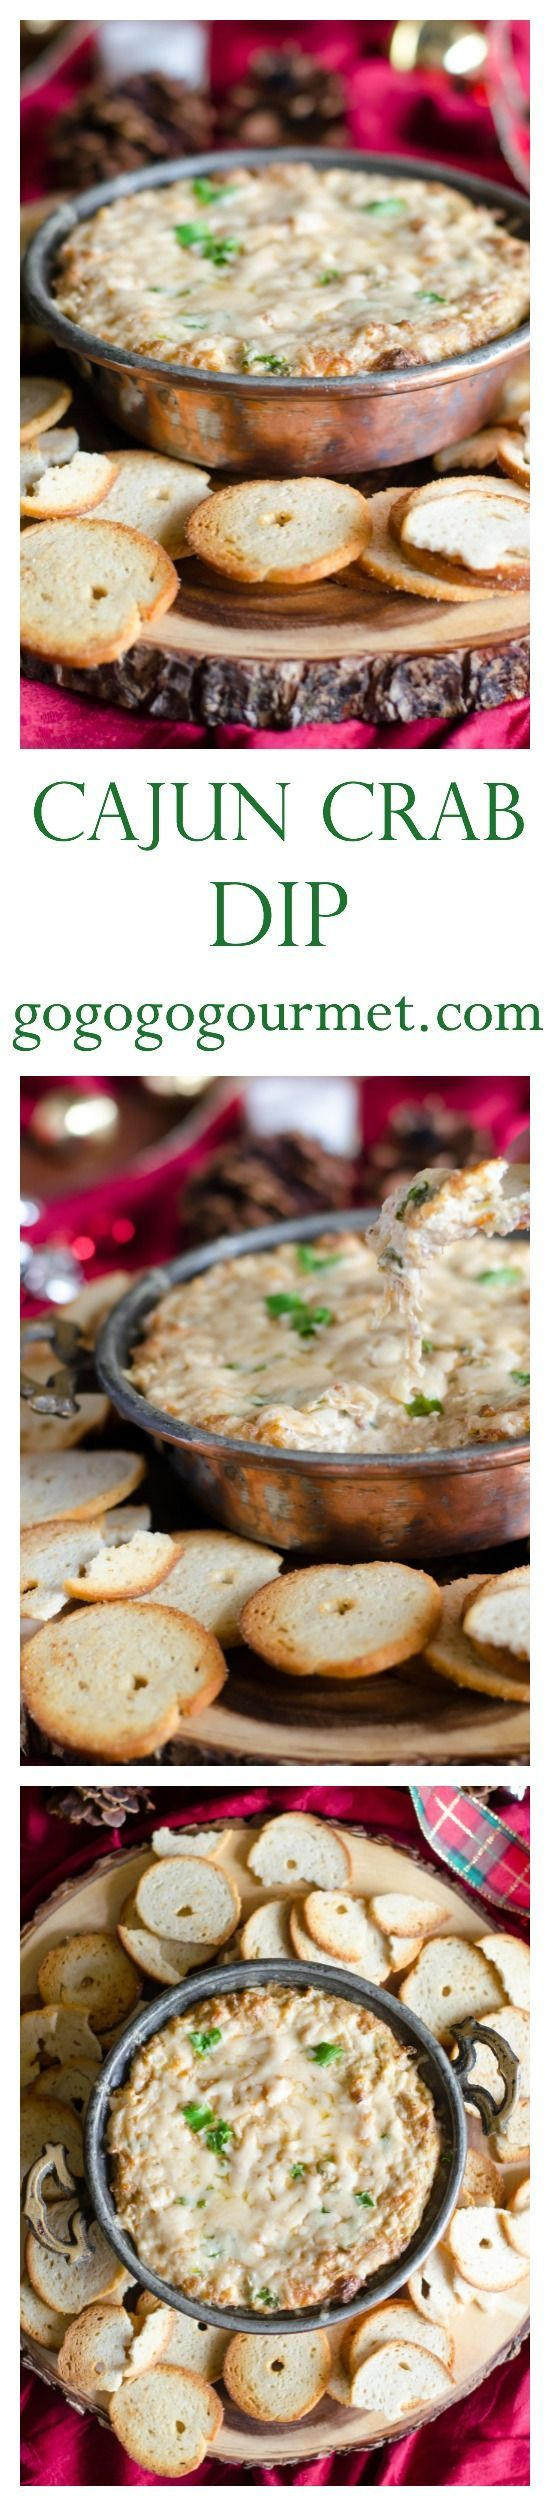 Everyone loves a good dip for parties- and this Cajun Crab Dip is truly…